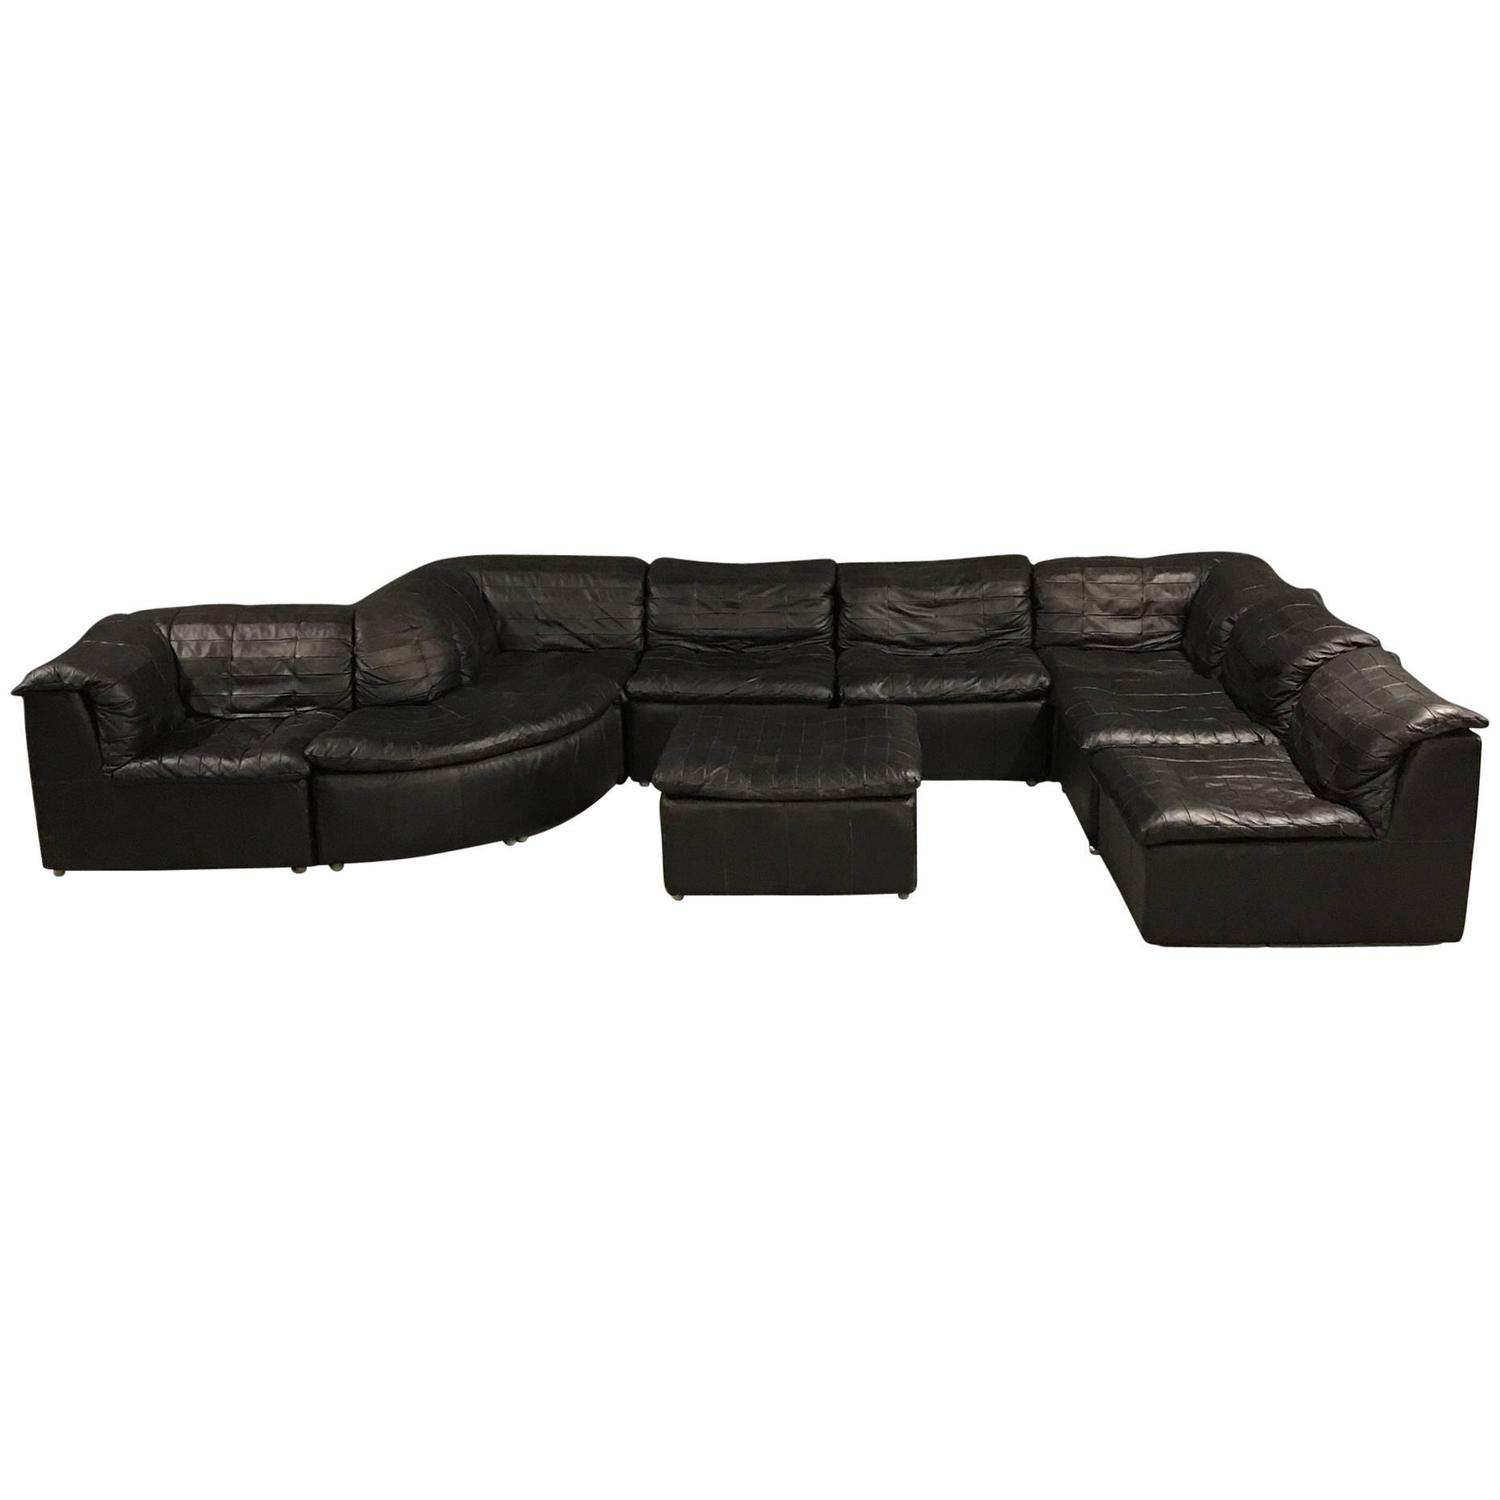 Vintage black modular patchwork sofa by laauser at 1stdibs parisarafo Image collections